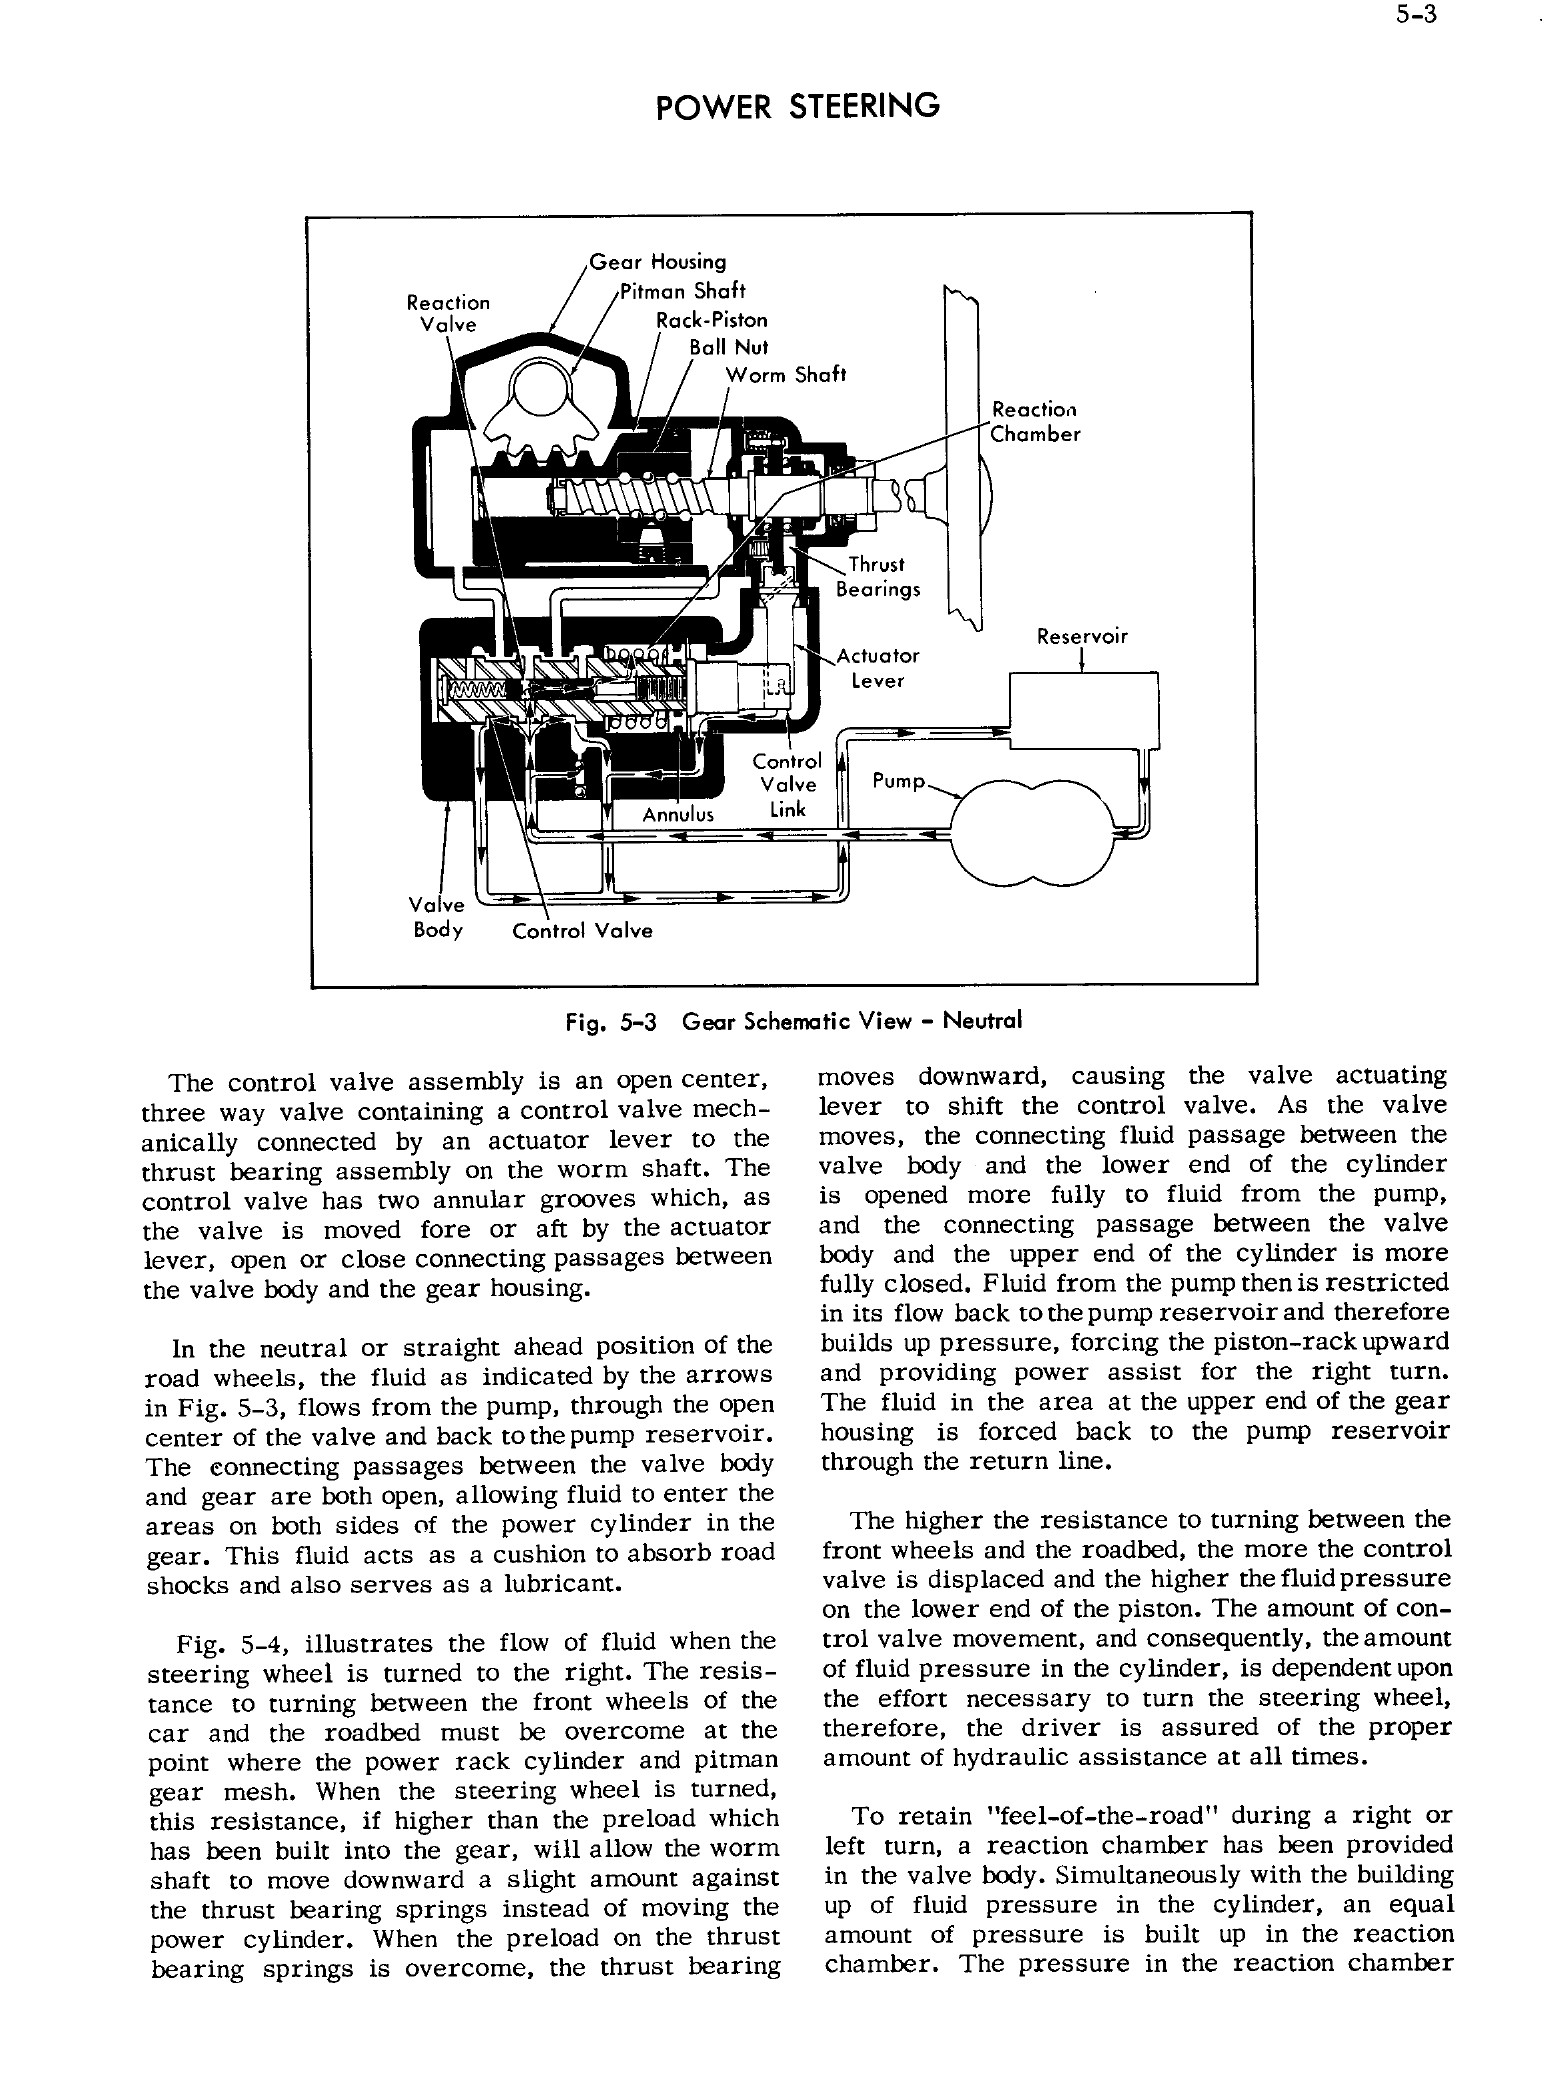 1956 Cadillac Shop Manual- Power Steering Page 3 of 26